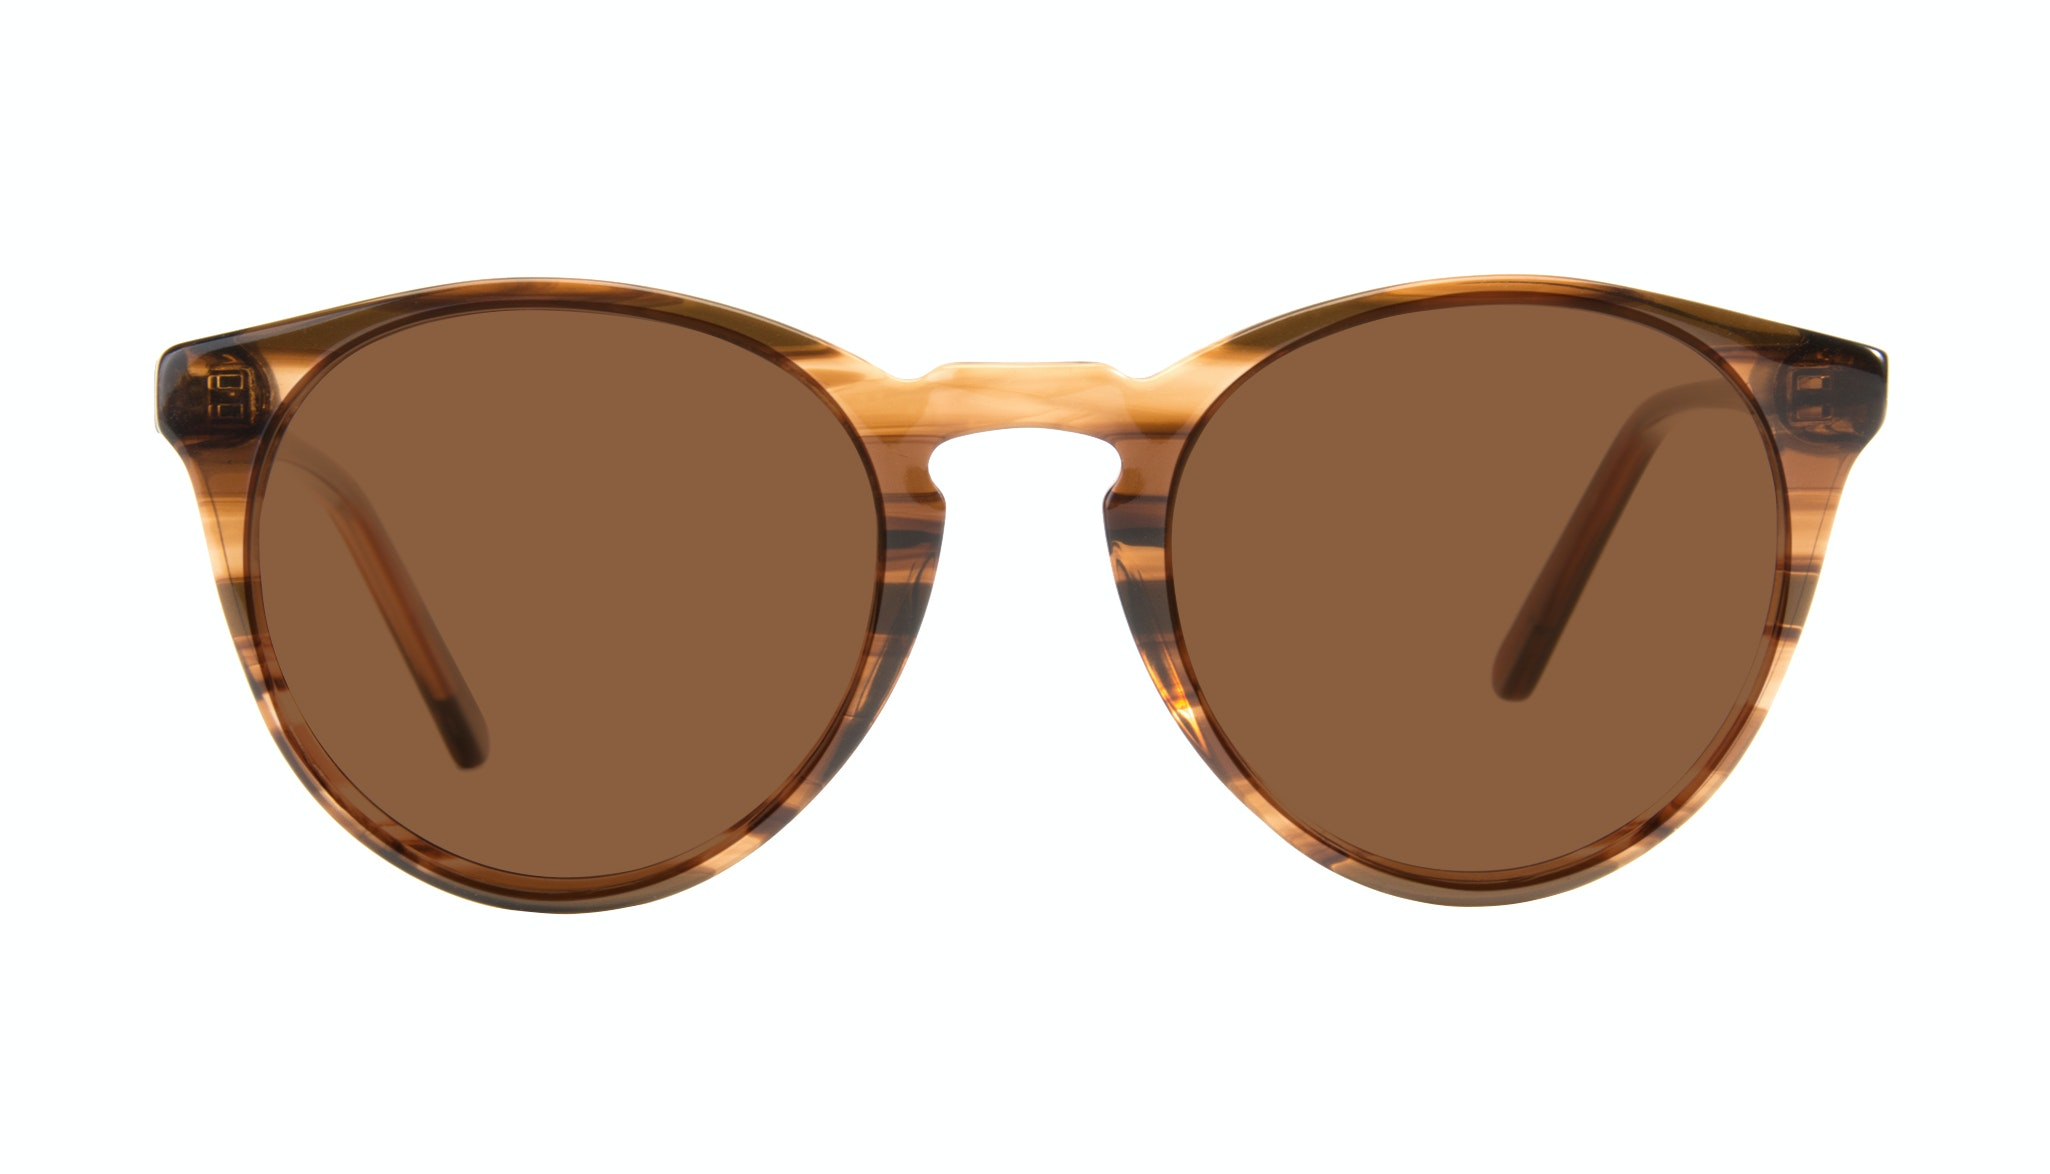 Affordable Fashion Glasses Round Sunglasses Men Arch Wood